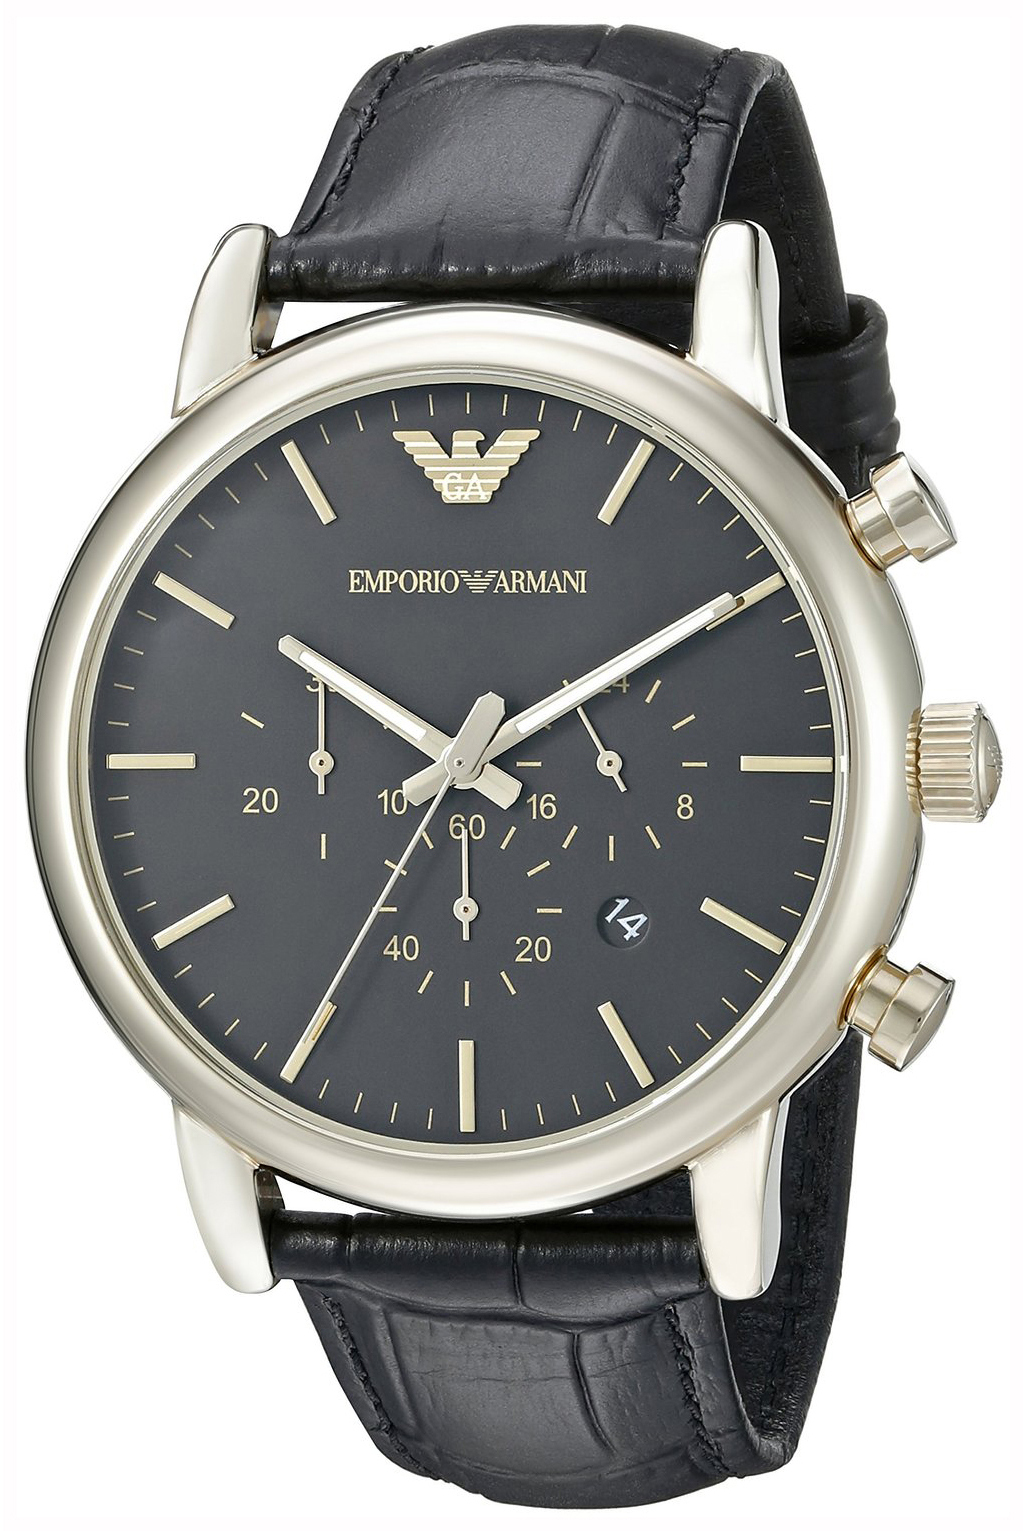 Emporio Armani Dress Herreklokke AR1917 Sort/Lær Ø46 mm - Emporio Armani